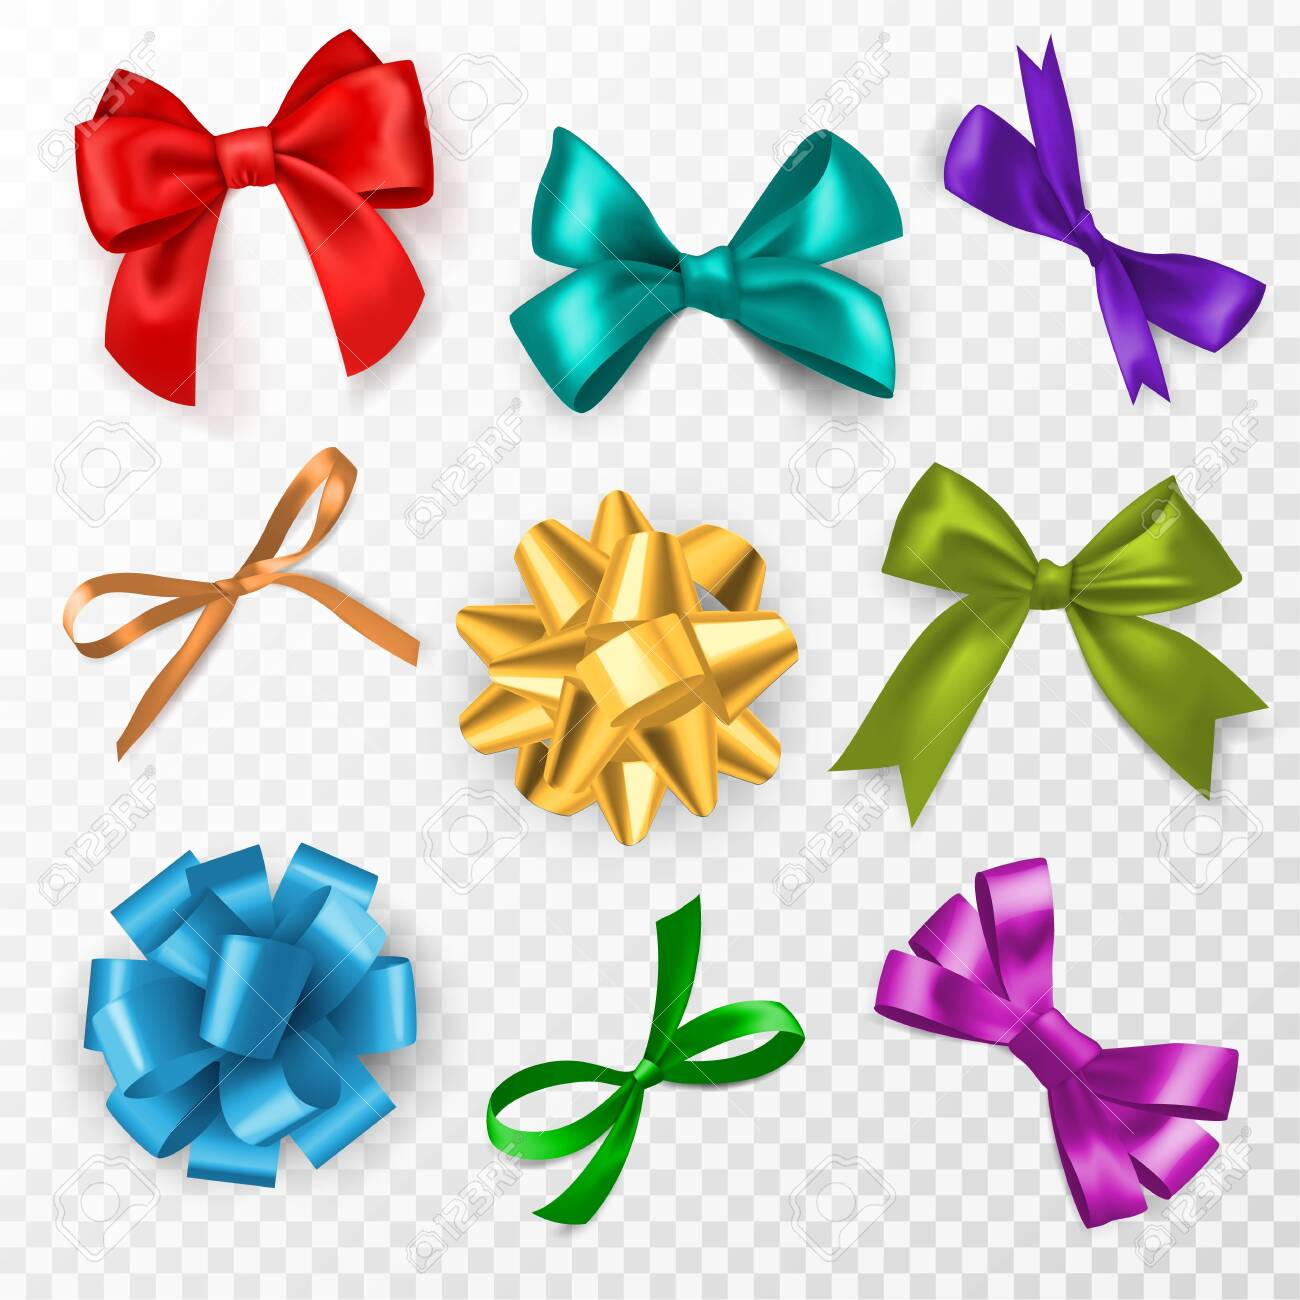 Multi-color gift bows. Red, blue and gold, pink silk ribbon bow for christmas, birthday present and wedding card decoration, packaging elegant gift tape vector set on transparent background - 154006988